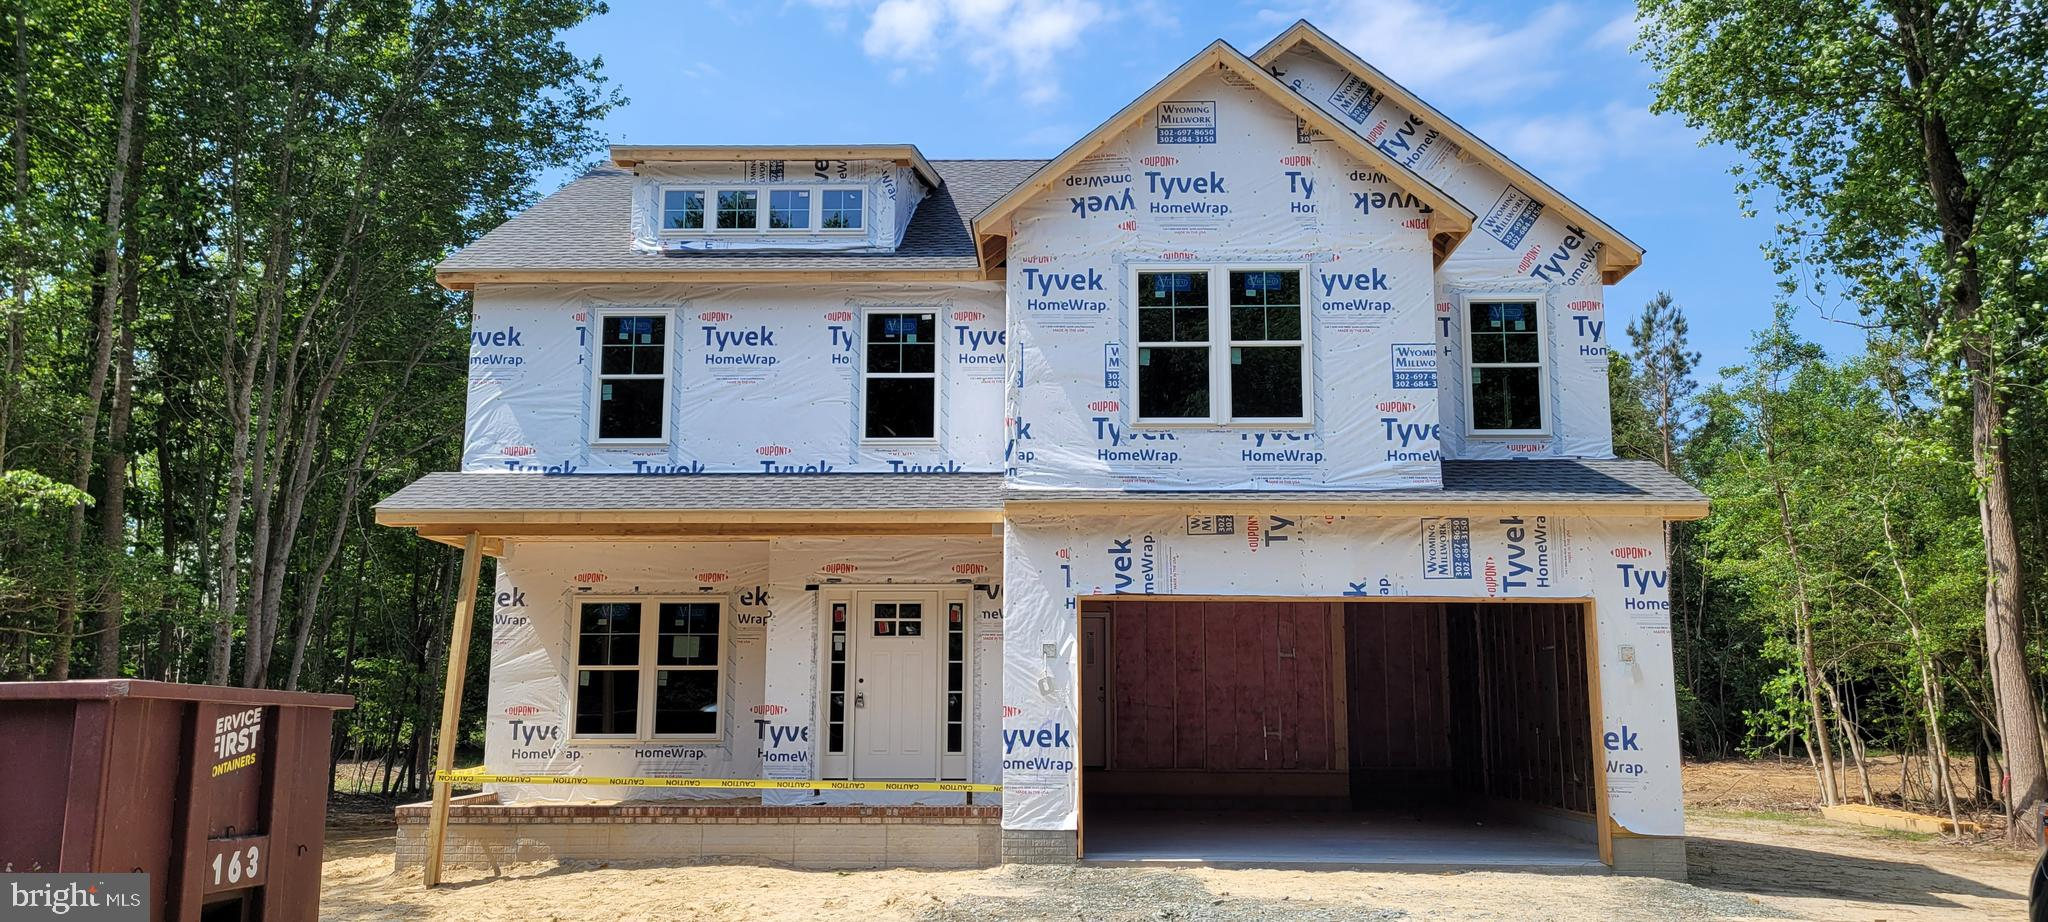 Welcome to Canaan Woods! This new development offers large, 3/4 acre minimum, private wooded homesites, just minutes from Milton. This spec home is breaking ground in late March. The Hampton model will have hardwoods downstairs, Level B granite, & a full 8 foot basement! Completion expected late summer. Pictures are of a similar home.